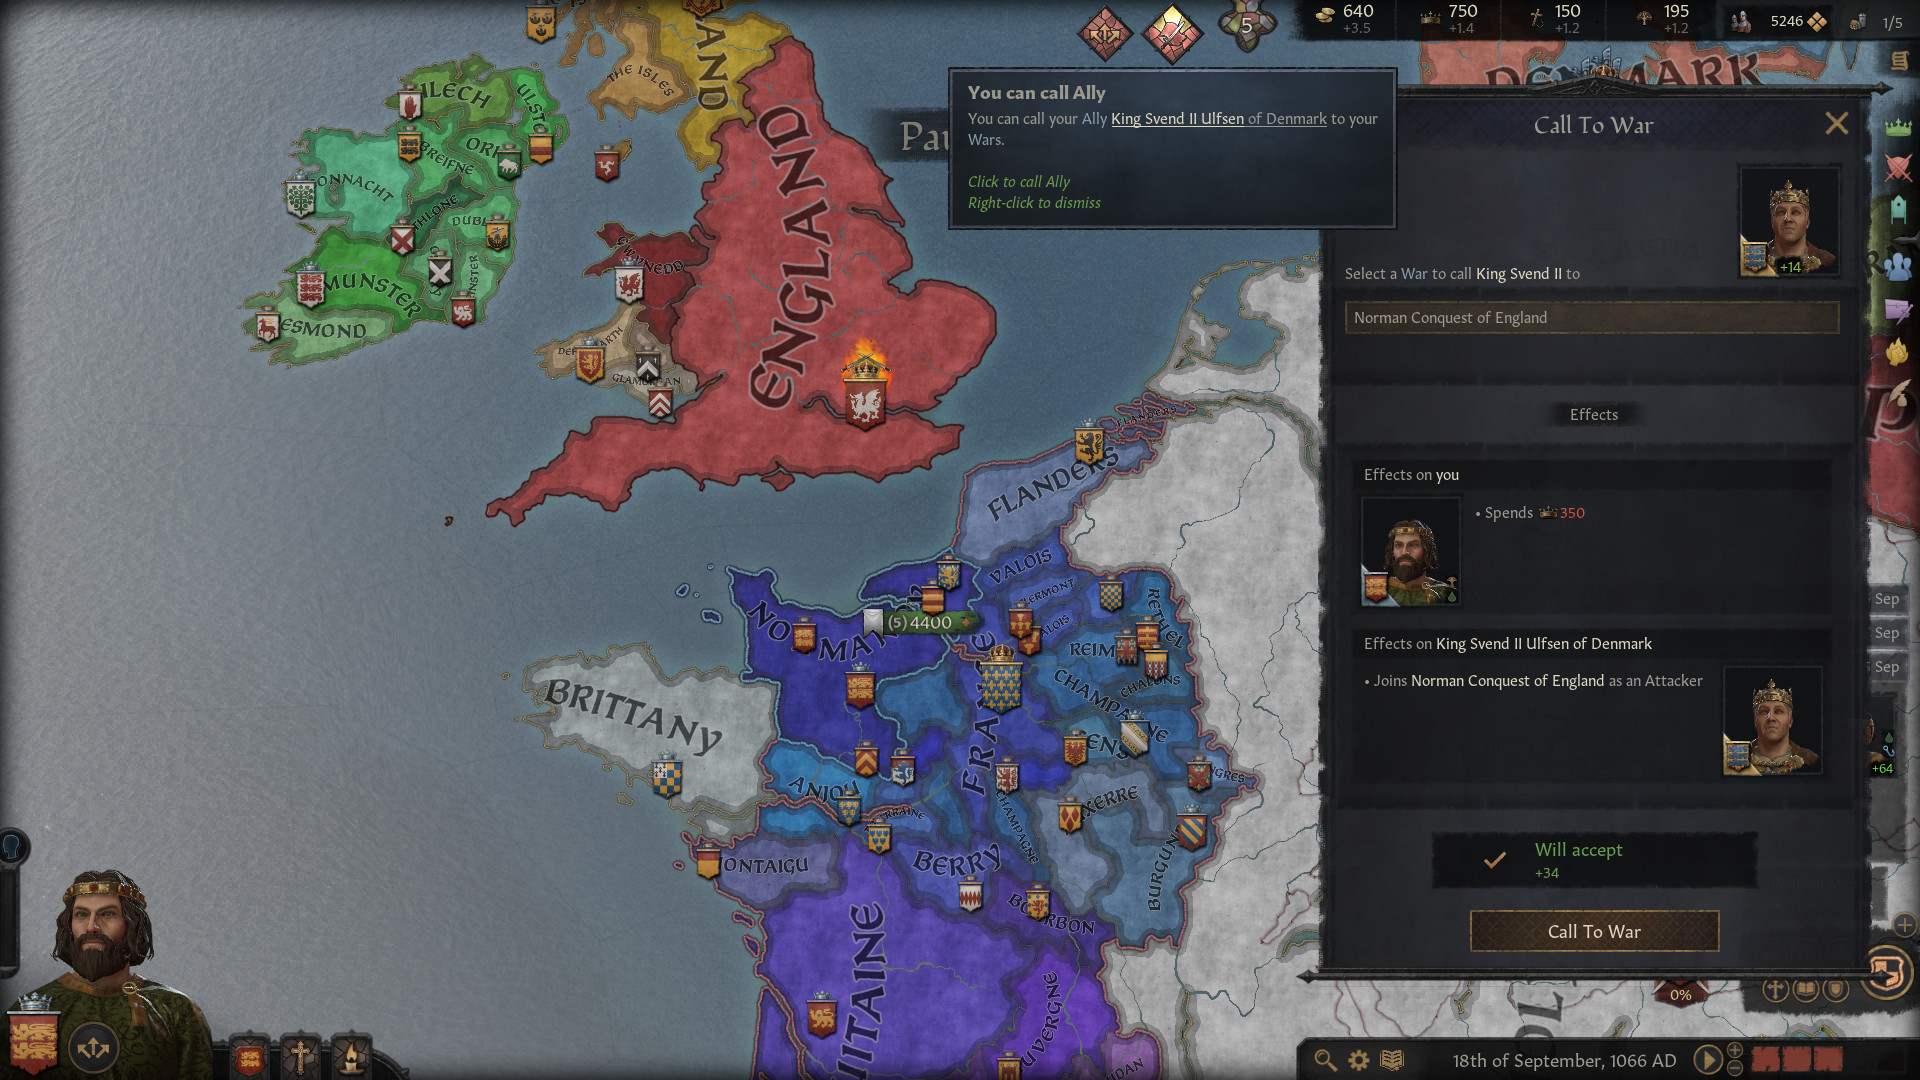 A Crusader Kings 3 screenshot showing an Ally alert